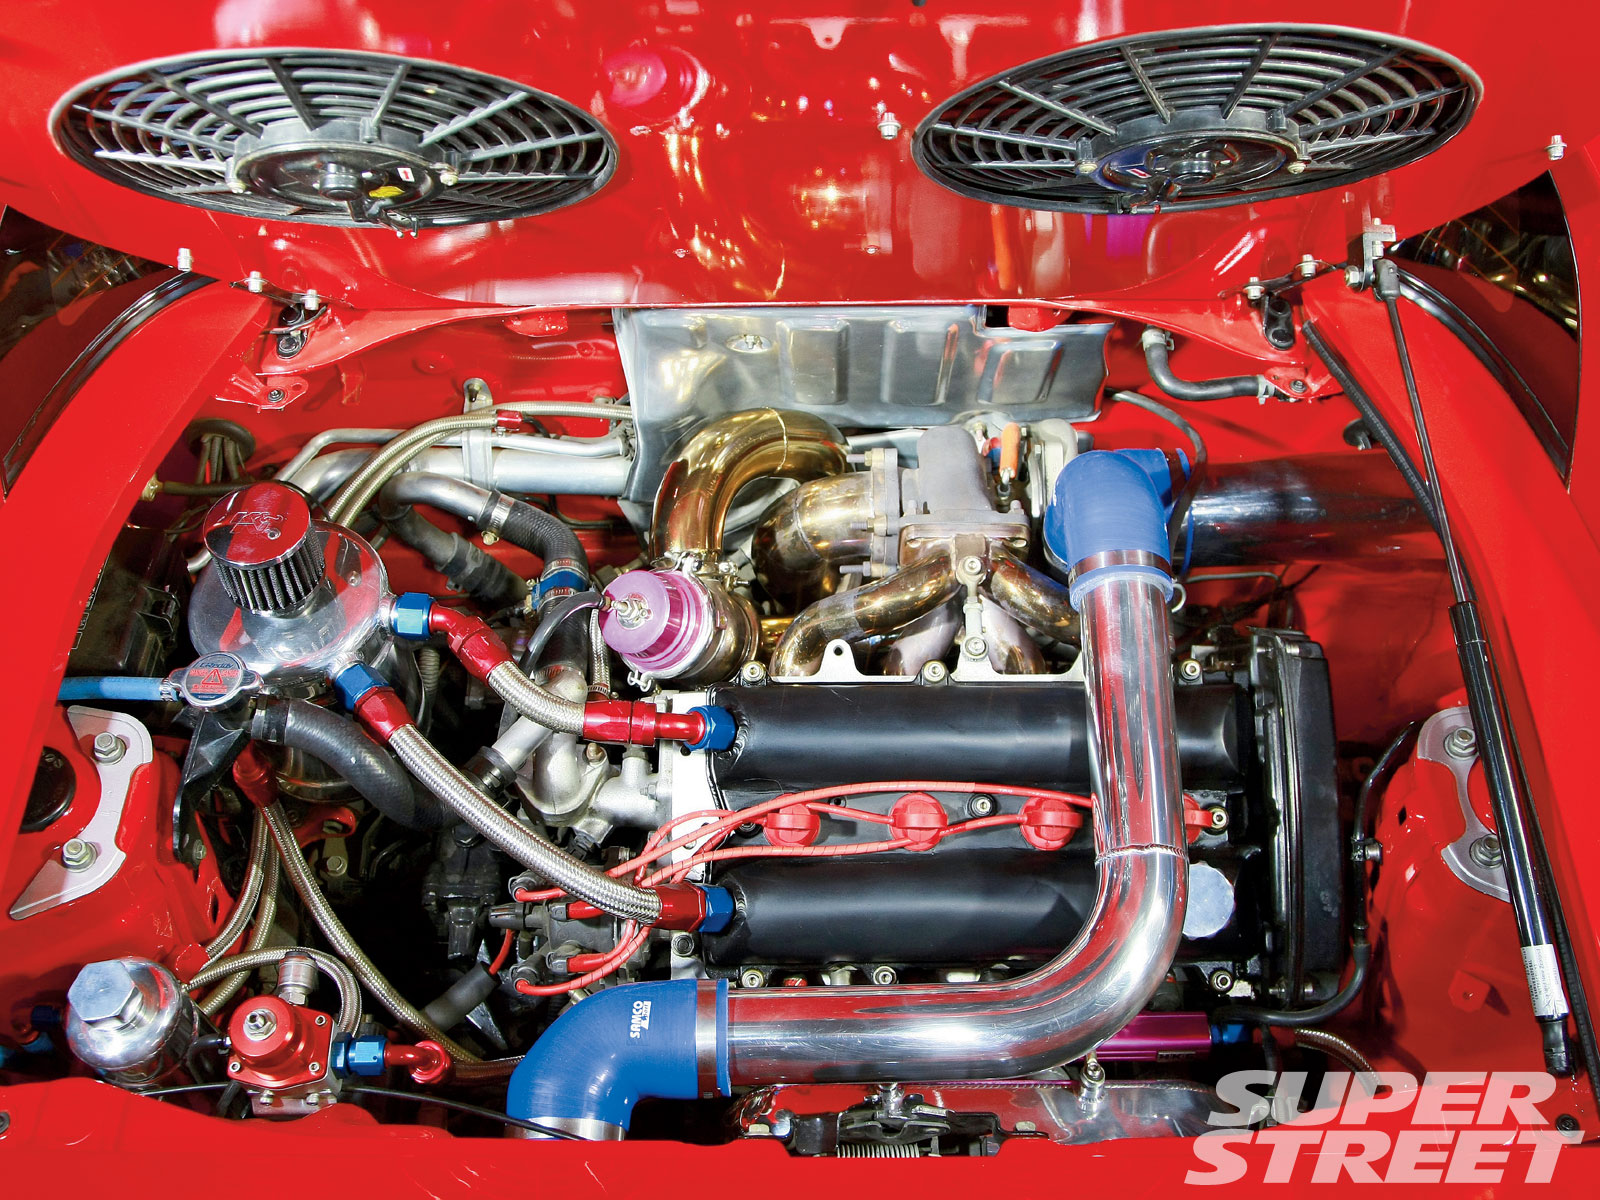 hight resolution of sstp 1011 07 o 1994 toyota mr2 gts 3sgte engine